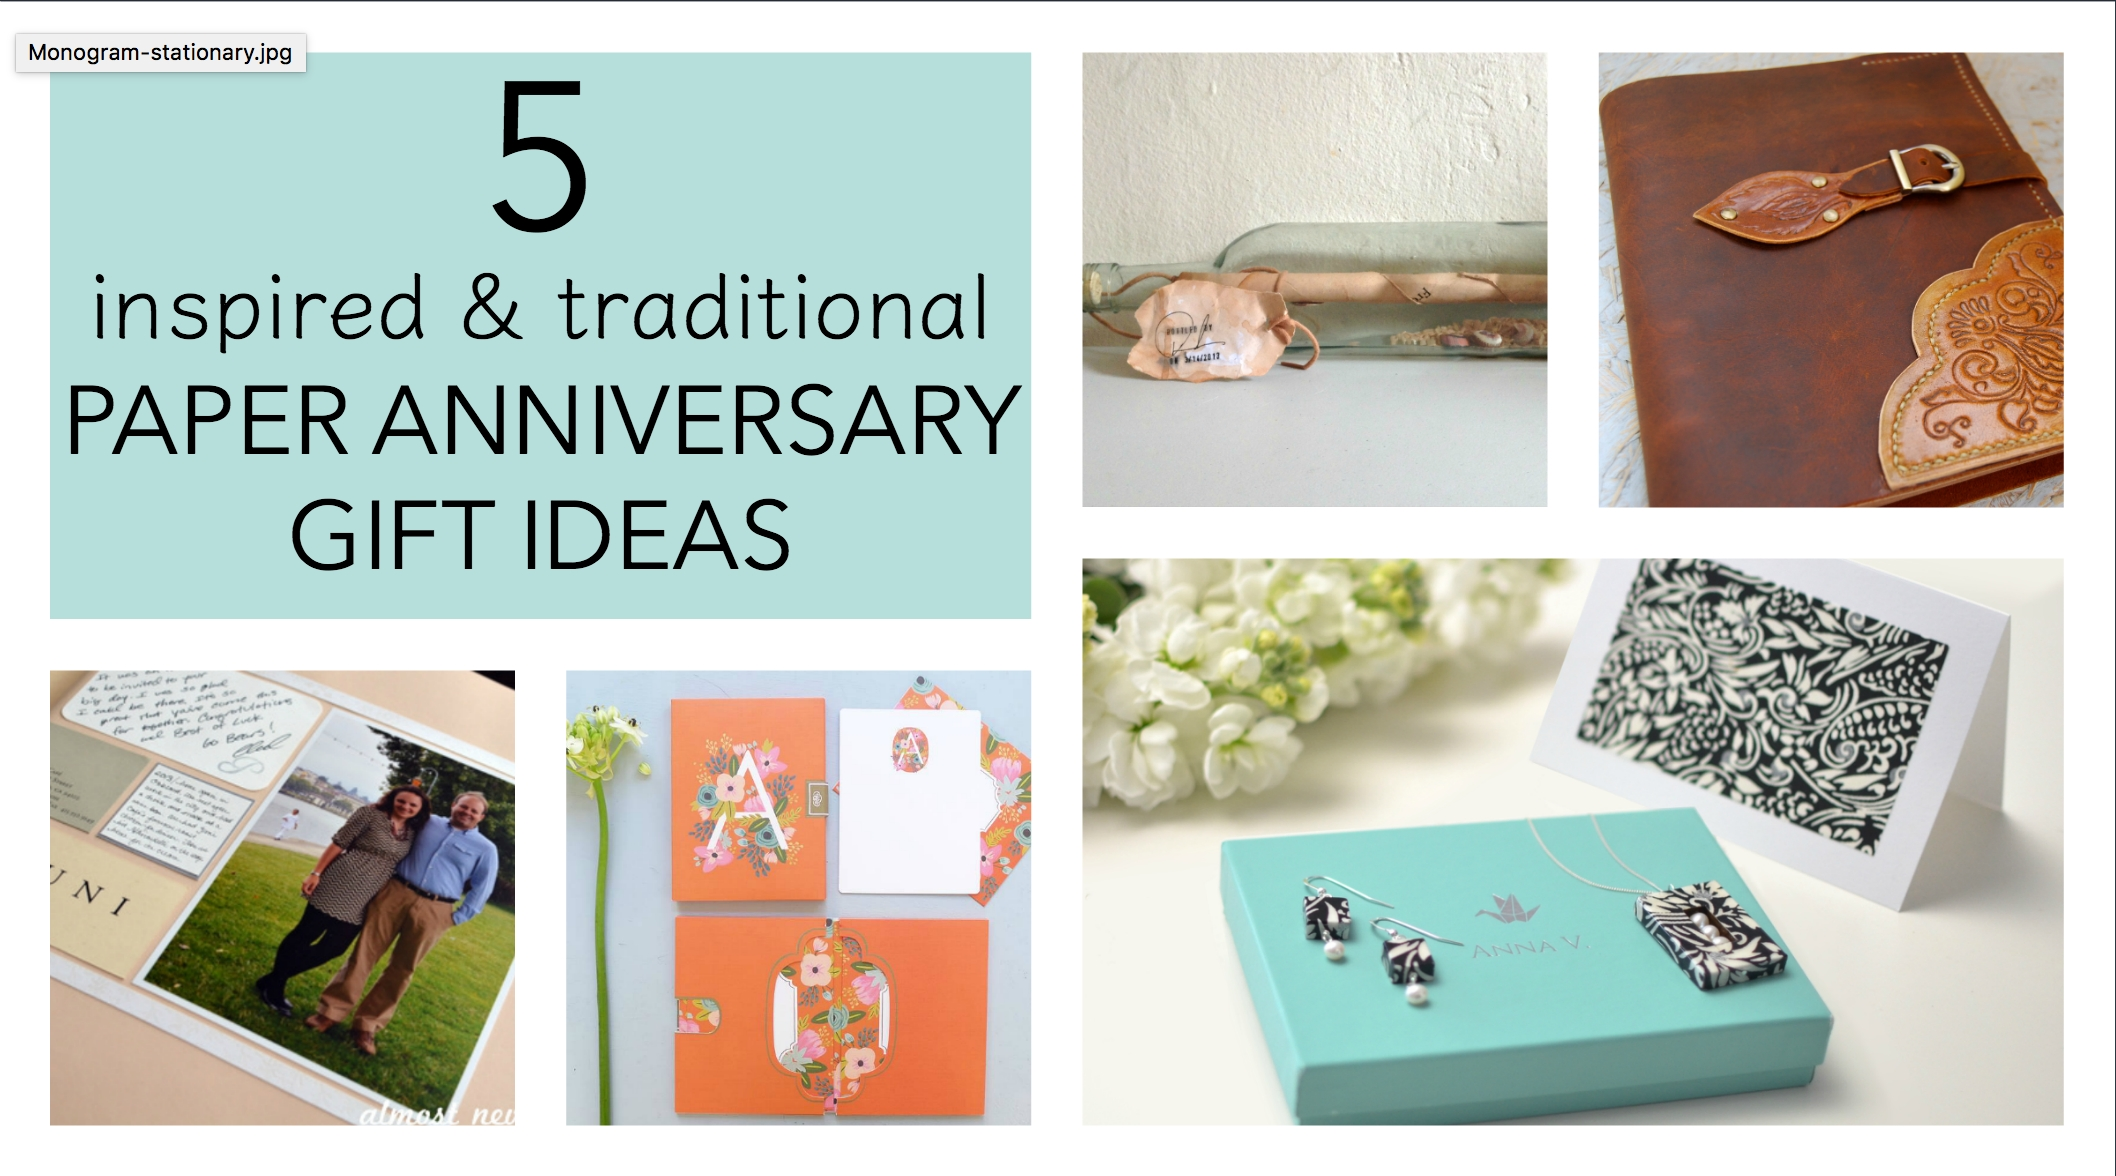 10 Stylish Great Anniversary Gift Ideas For Her 5 traditional paper anniversary gift ideas for her paper 11 2020